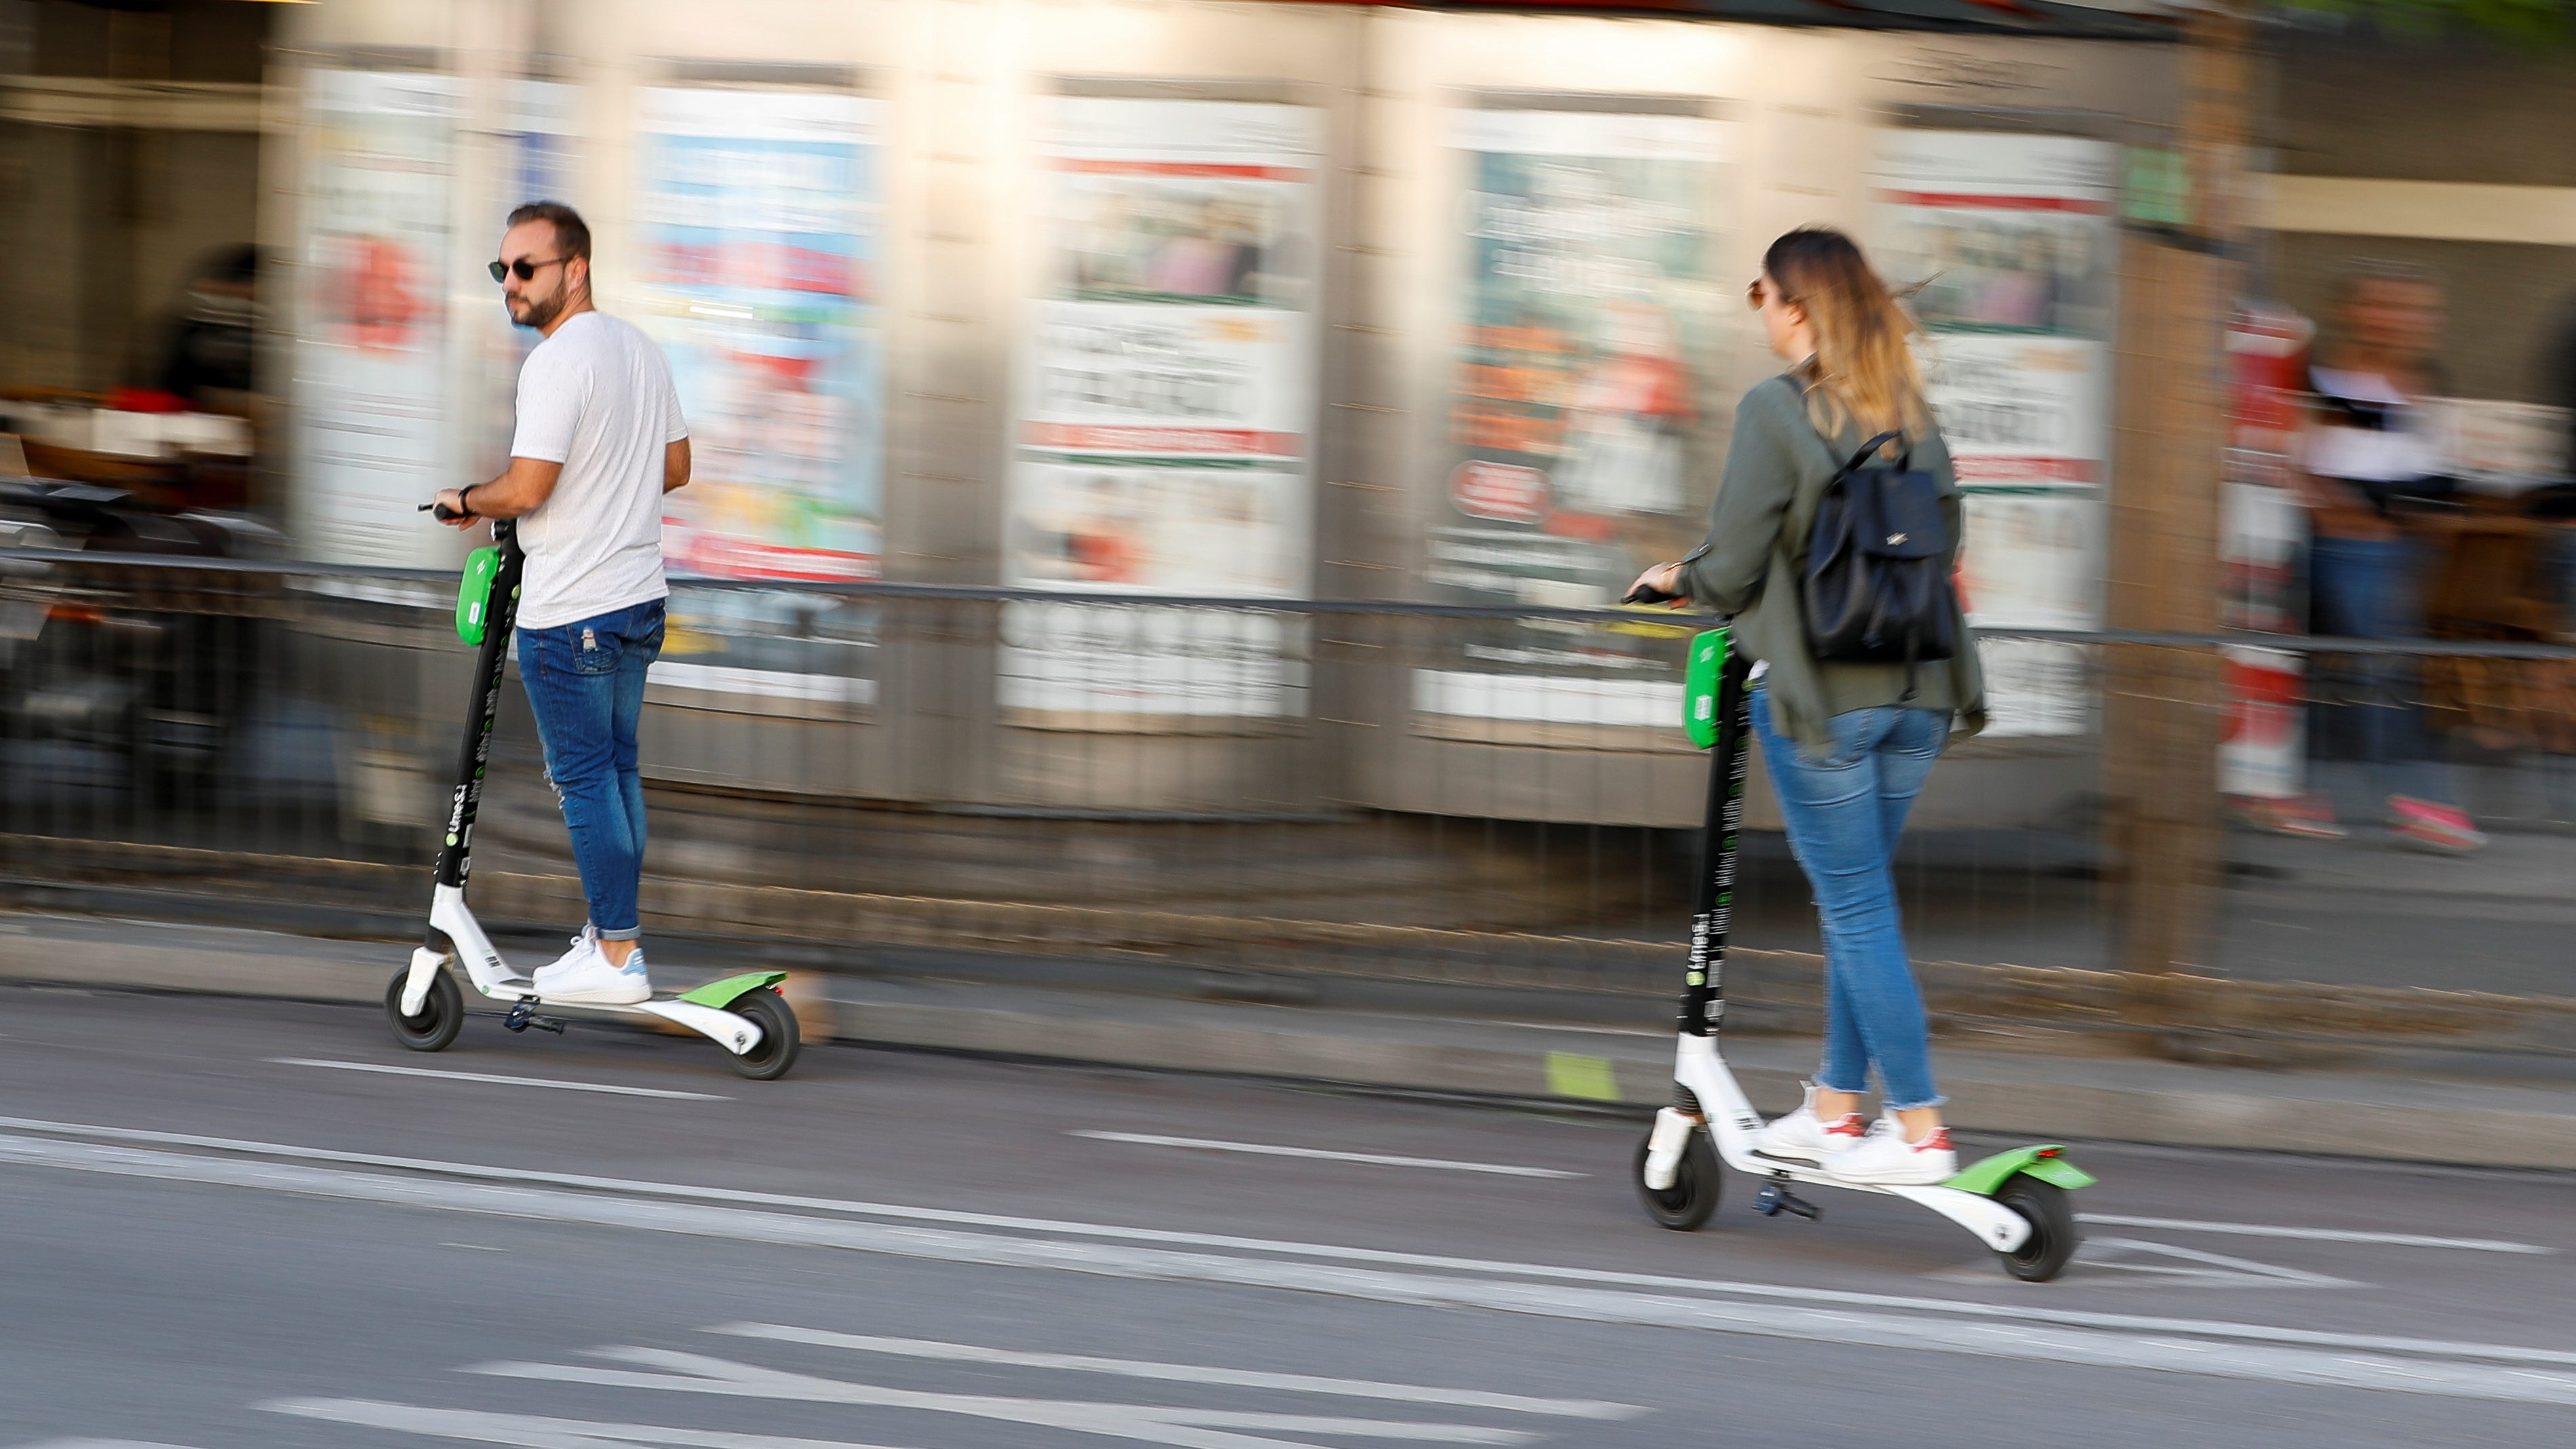 Nashville may ban electric scooters after man dies riding